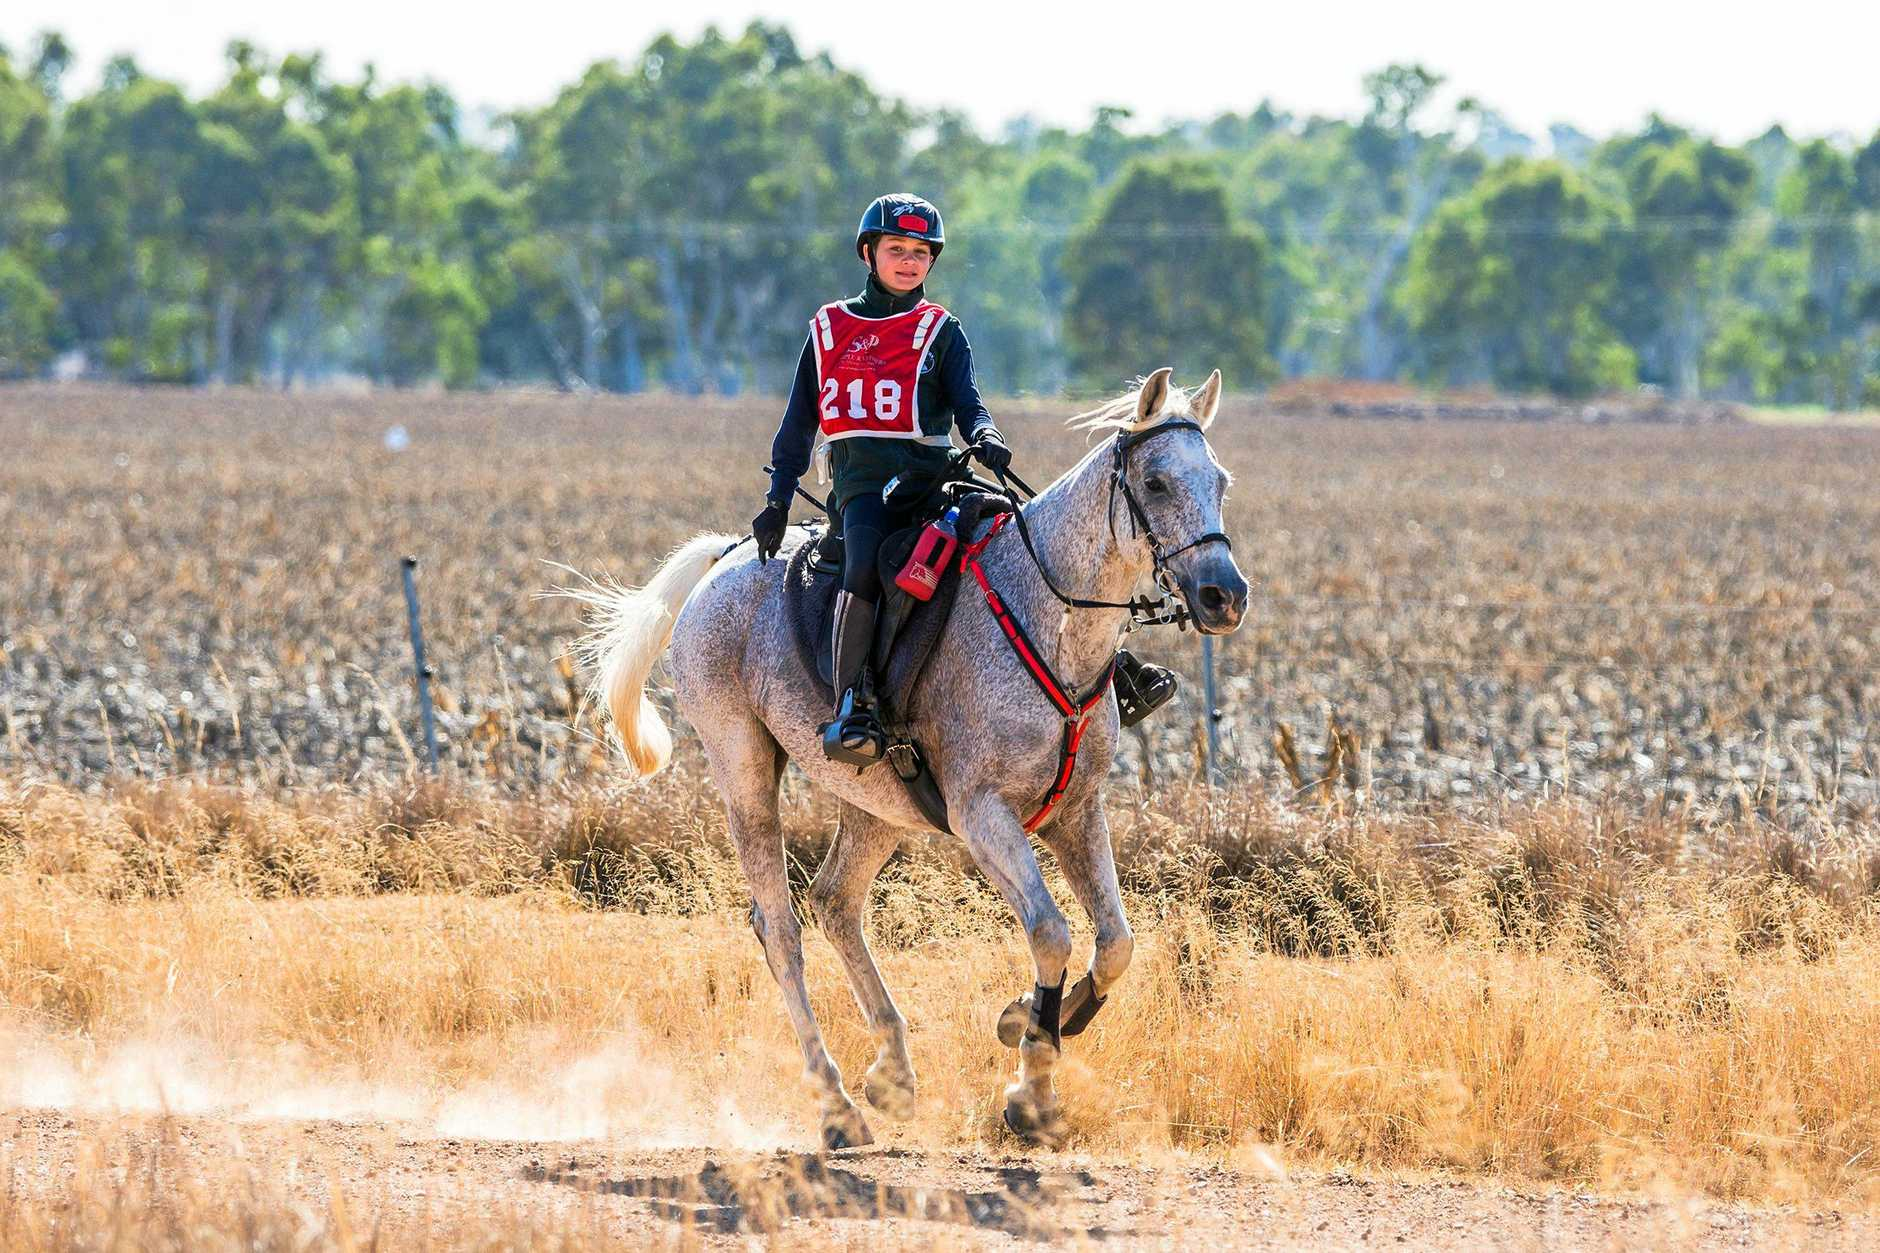 GOING THE DISTANCE: Zac Sample, 12 pictured here on Milo, is the youngest competitor in this year's Tom Quilty endurance ride. INSET: The Tom Quilty Cup will be on display at Stirling's Crossing.